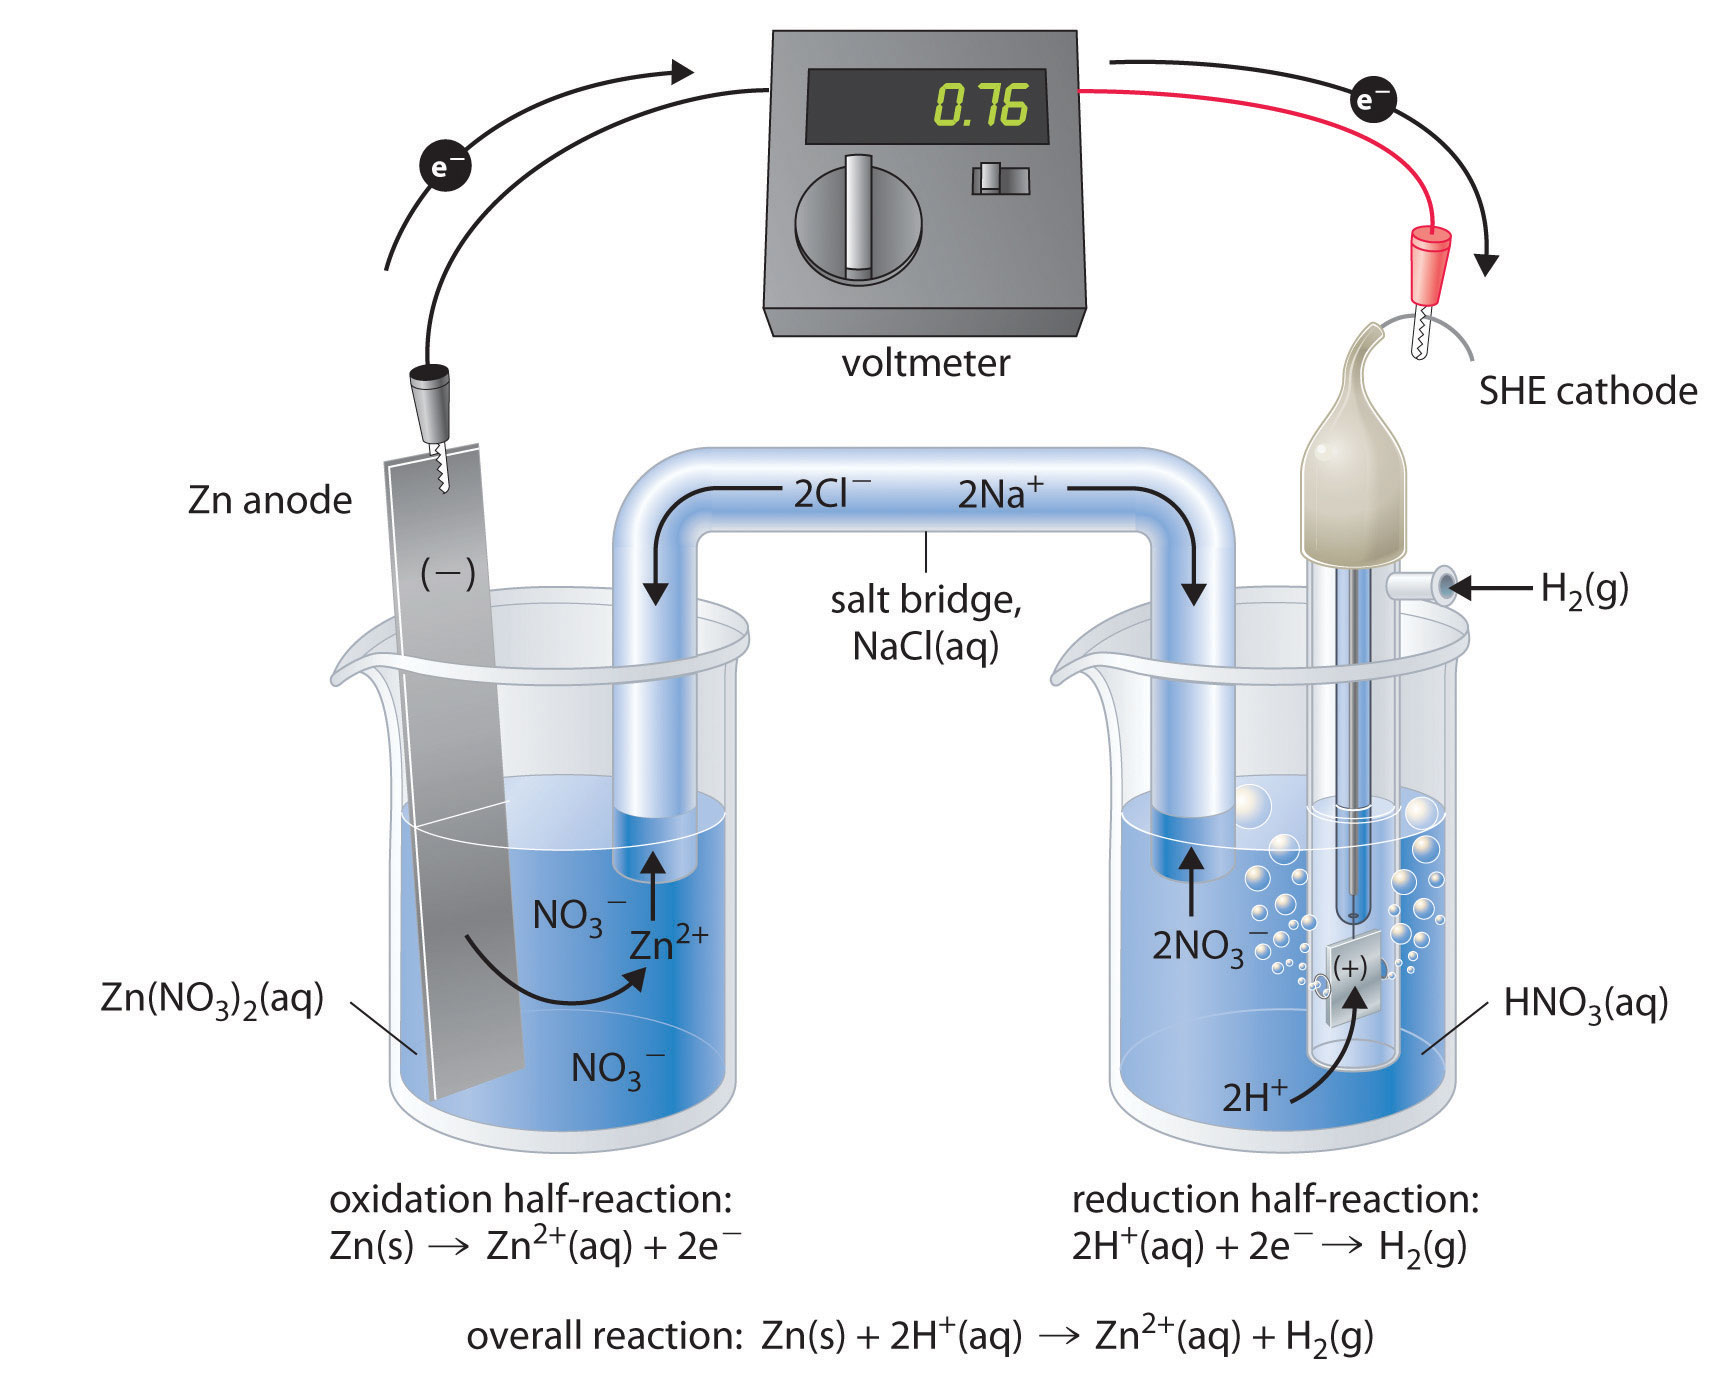 electrochemistry Galvanic cells traditionally are used as sources of dc electrical power a simple galvanic cell may contain only one electrolyte separated by a semi-porous membrane, while a more complex version involves two separate half-cells connected by a salt bridge.